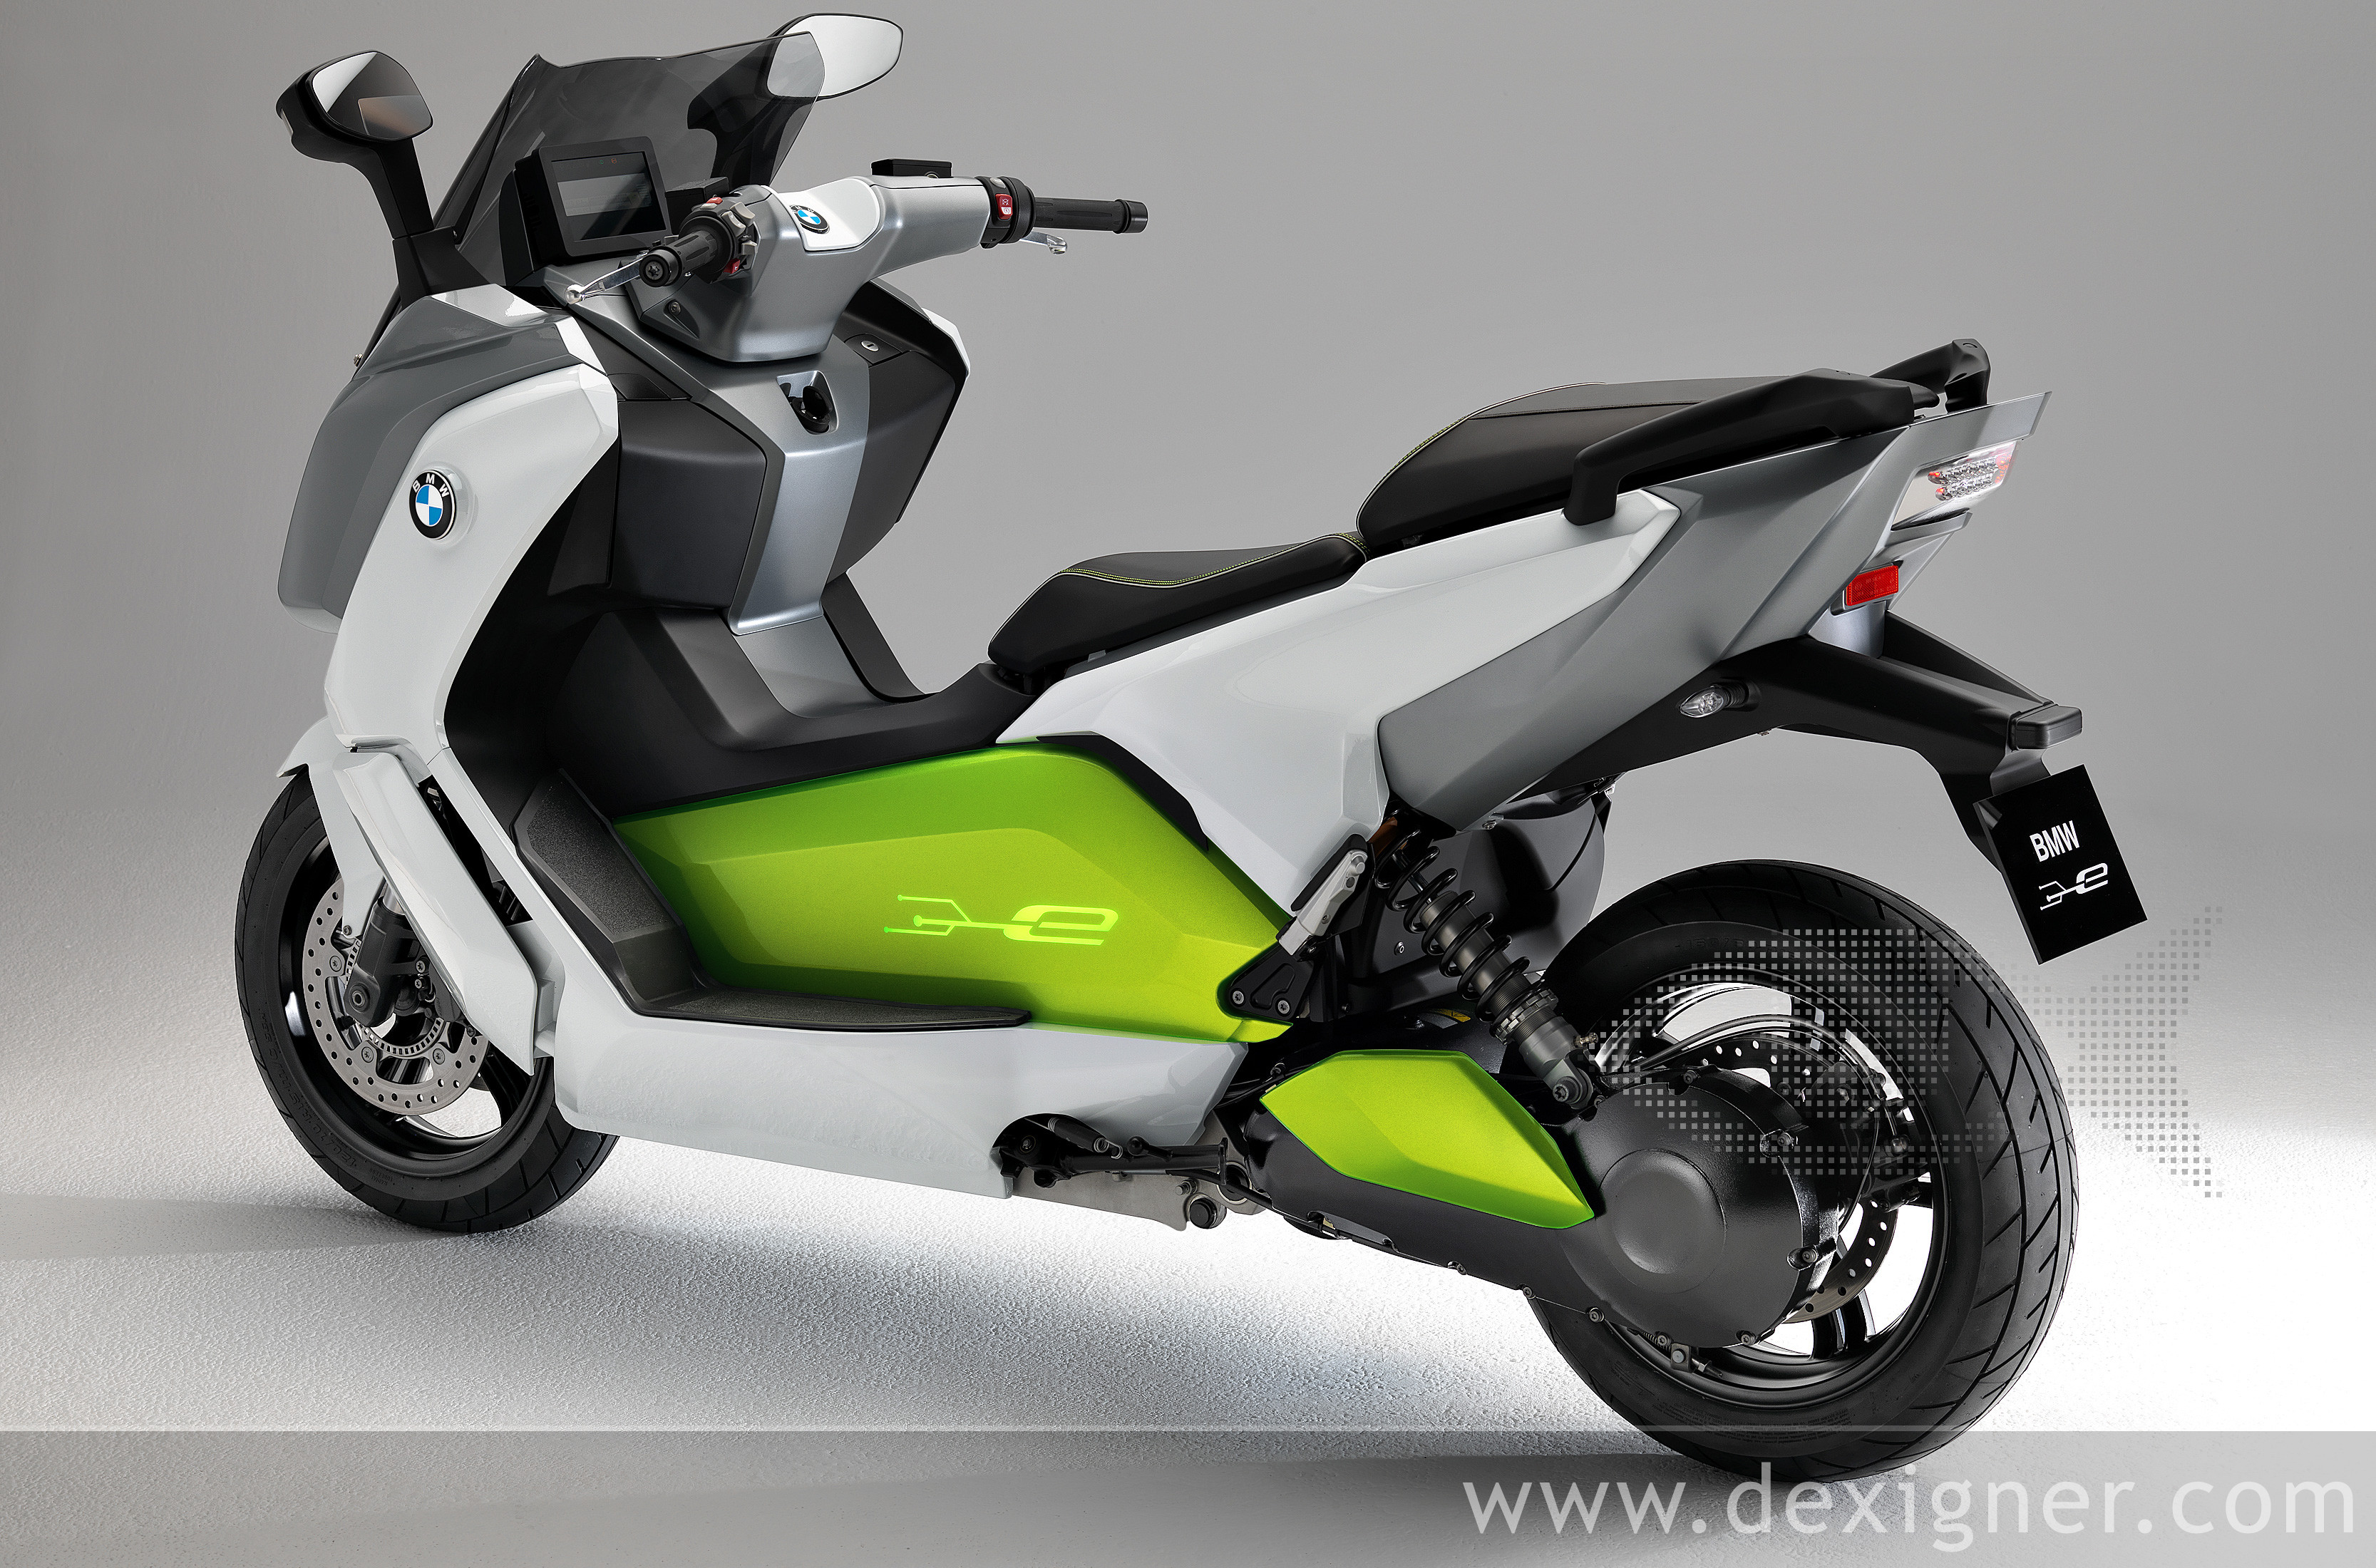 BMW Motorrad design style is also reflected in the styling of the